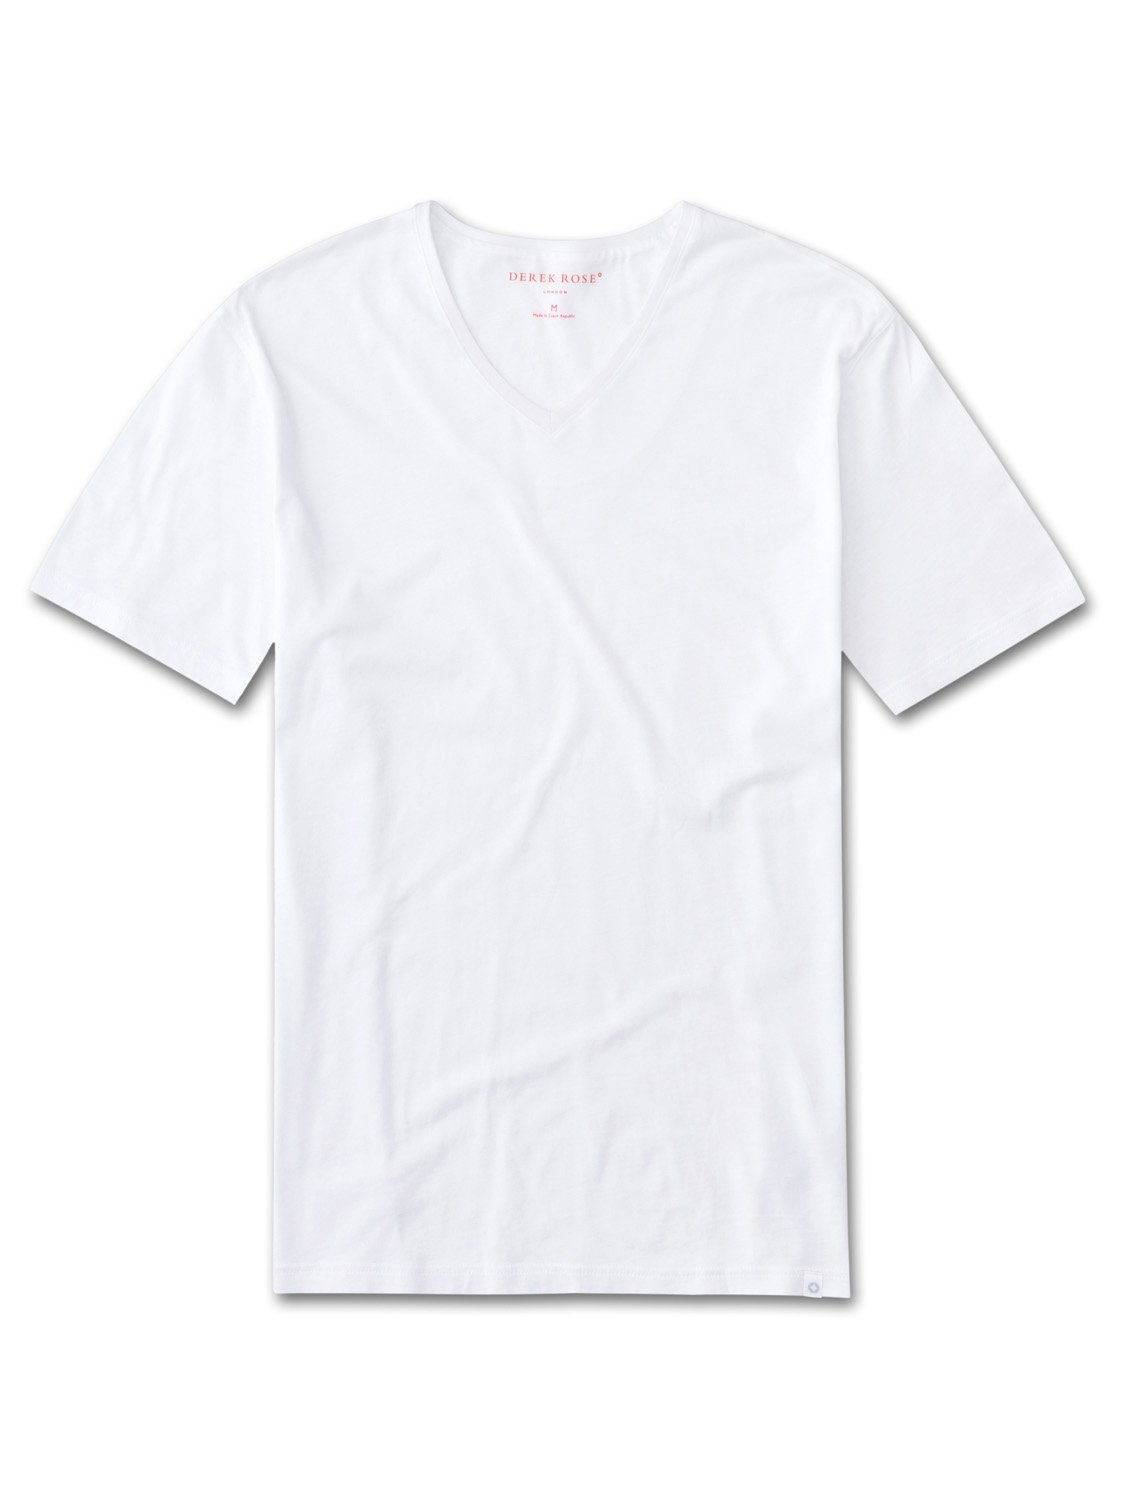 Men's Short Sleeve V-Neck T-Shirt Riley Pima Cotton White